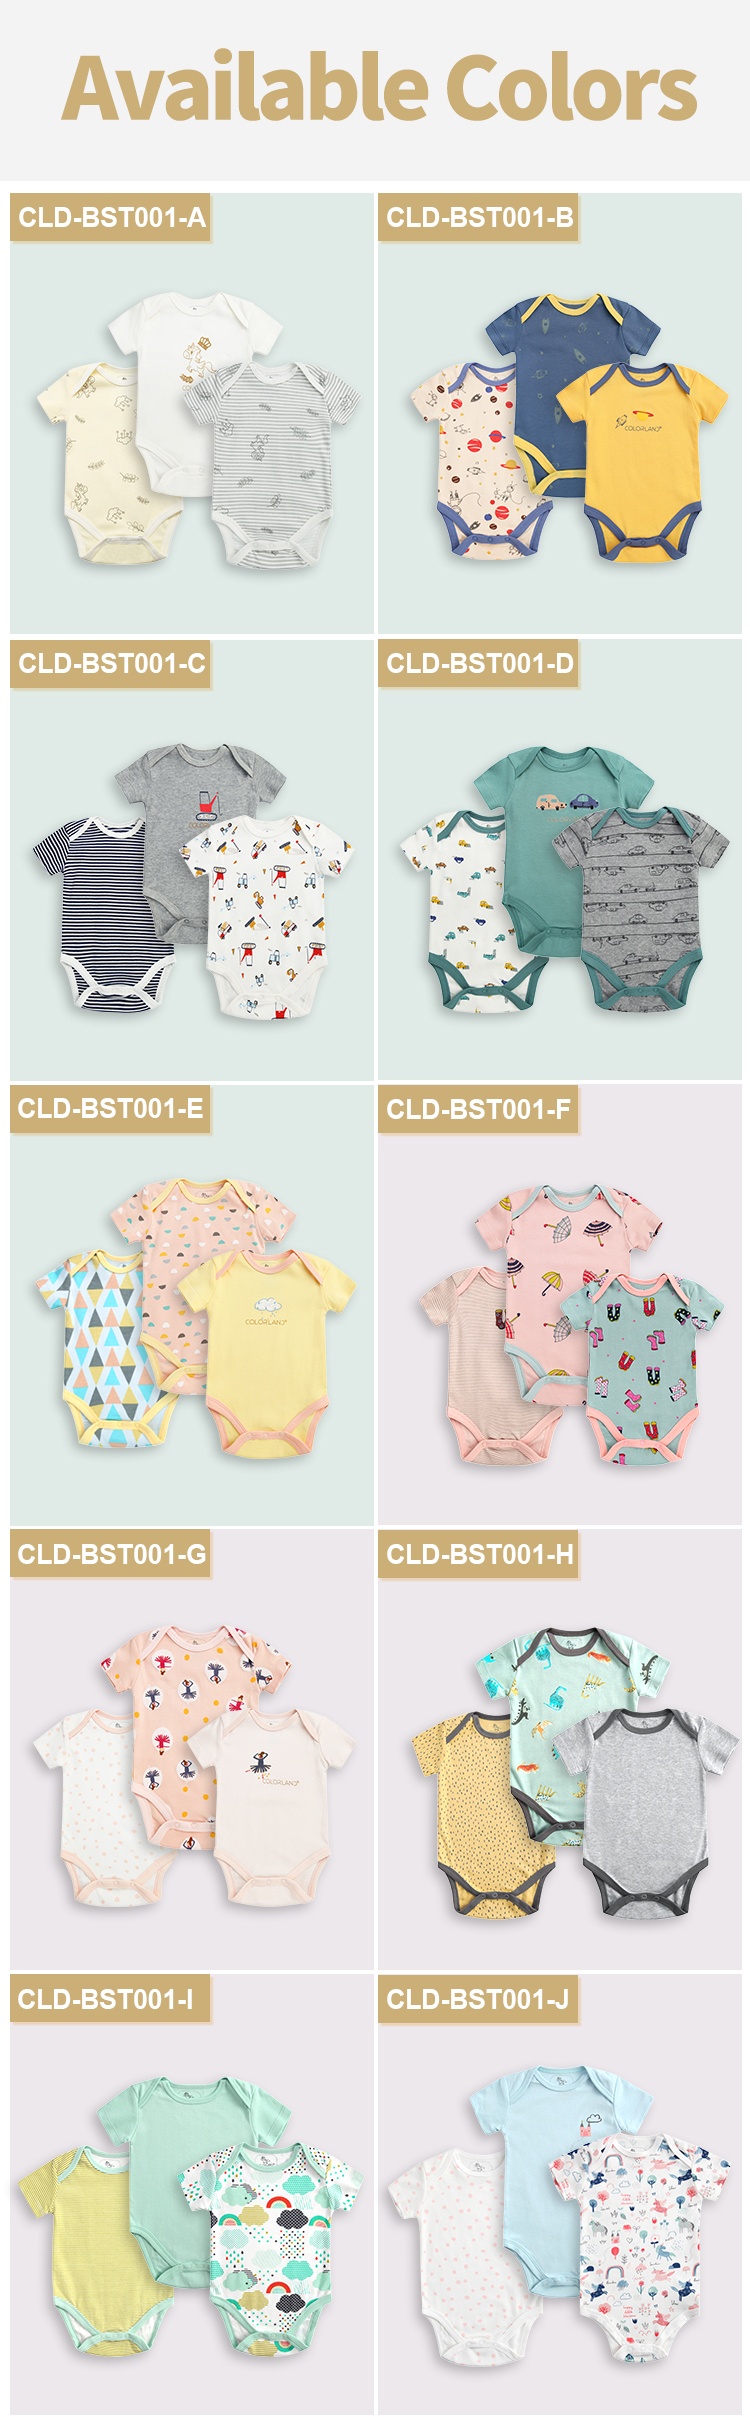 High quality level newborn clothing baby unisex clothes summer clothes